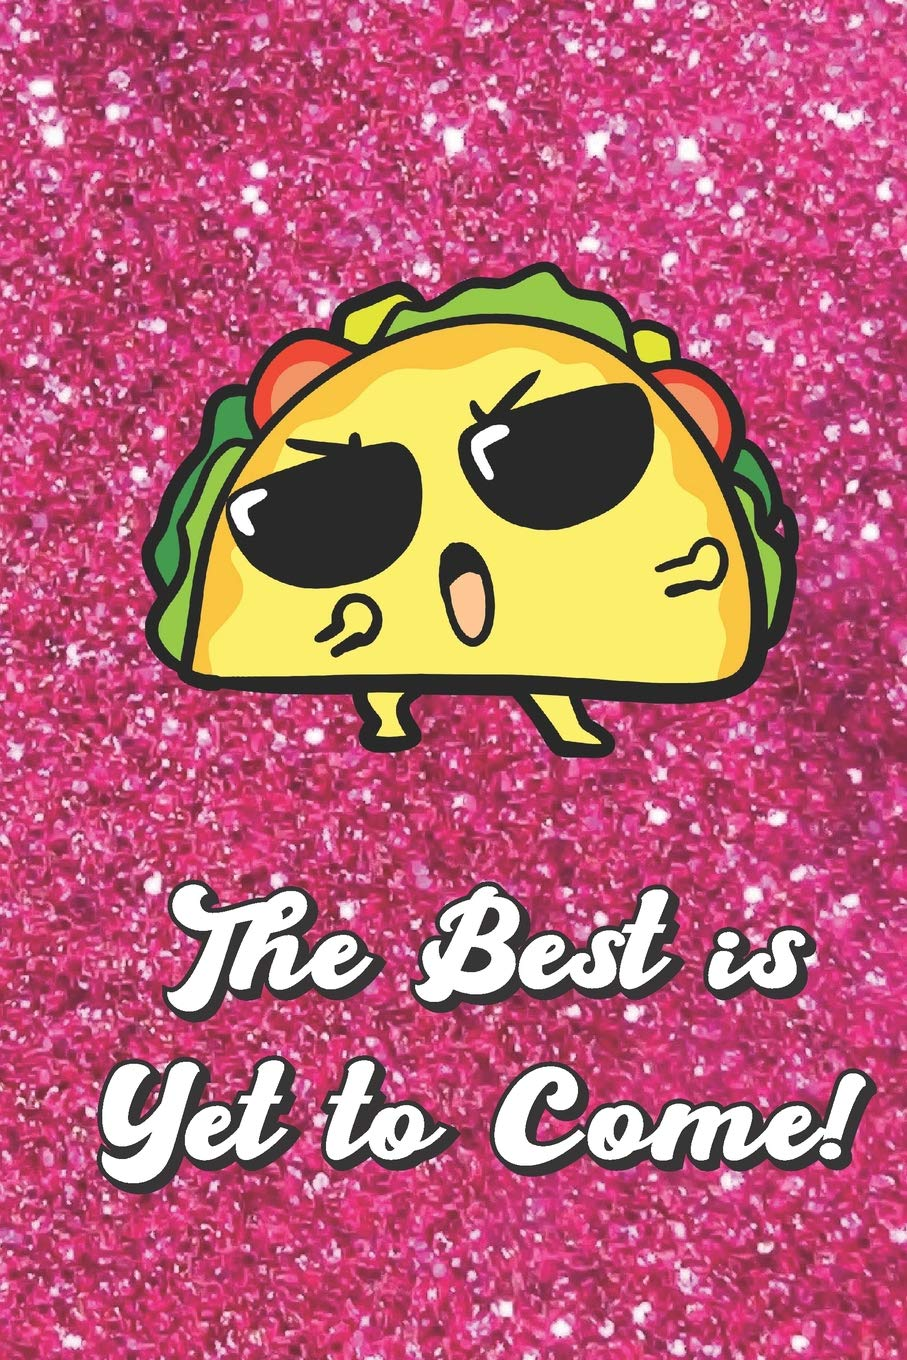 Buy The Best Is Yet To Come Cute Cool Sunglasses Taco With Pink Glitter Effect Background Blank Journal Book For Girls And Boys Of All Ages Perfect For Crayon Coloring